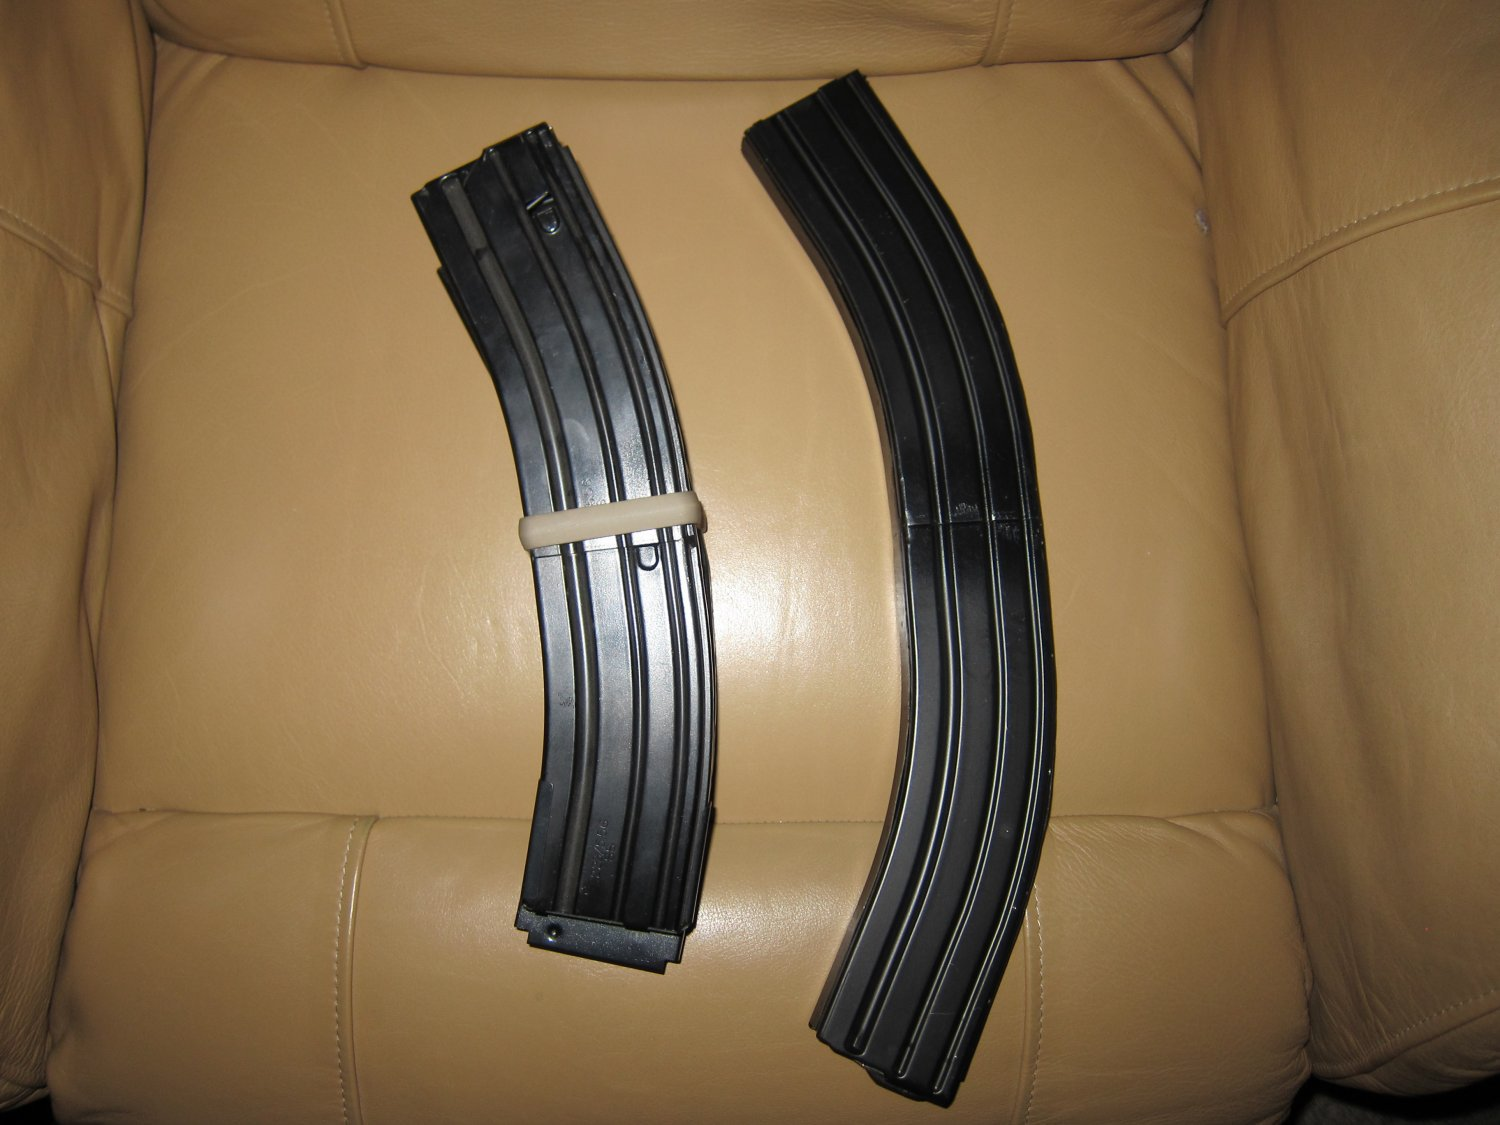 Higher Capacity 55 Round and 75 Round AR 15 5.56mm Rifle Magazines 2 <!  :en  >Higher Capacity 55 Round 5.56mm NATO and 32 Round 7.62mm NATO Rifle Magazines for Tactical AR (AR 15 and SR 25 type) and M14/M1A Rifles/Carbines/SBRs  (Photos and Video!) <!  :  >